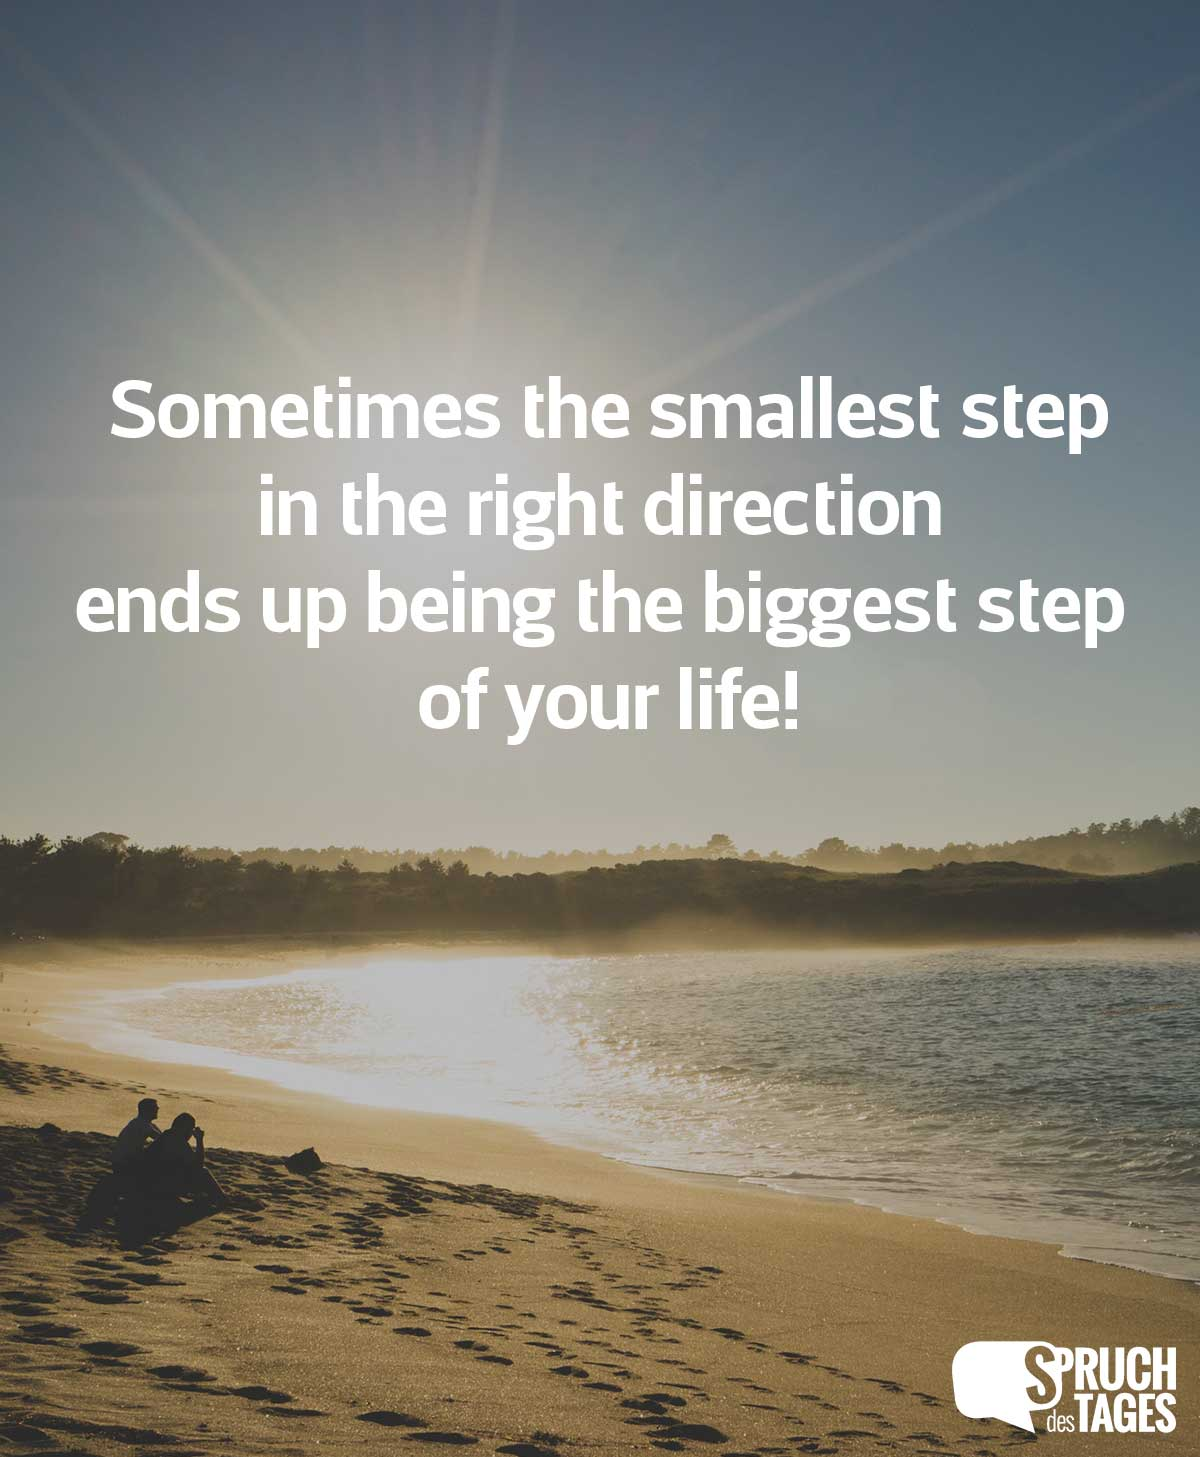 Sometimes the smallest step in the right direction ends up being the biggest step of your life!